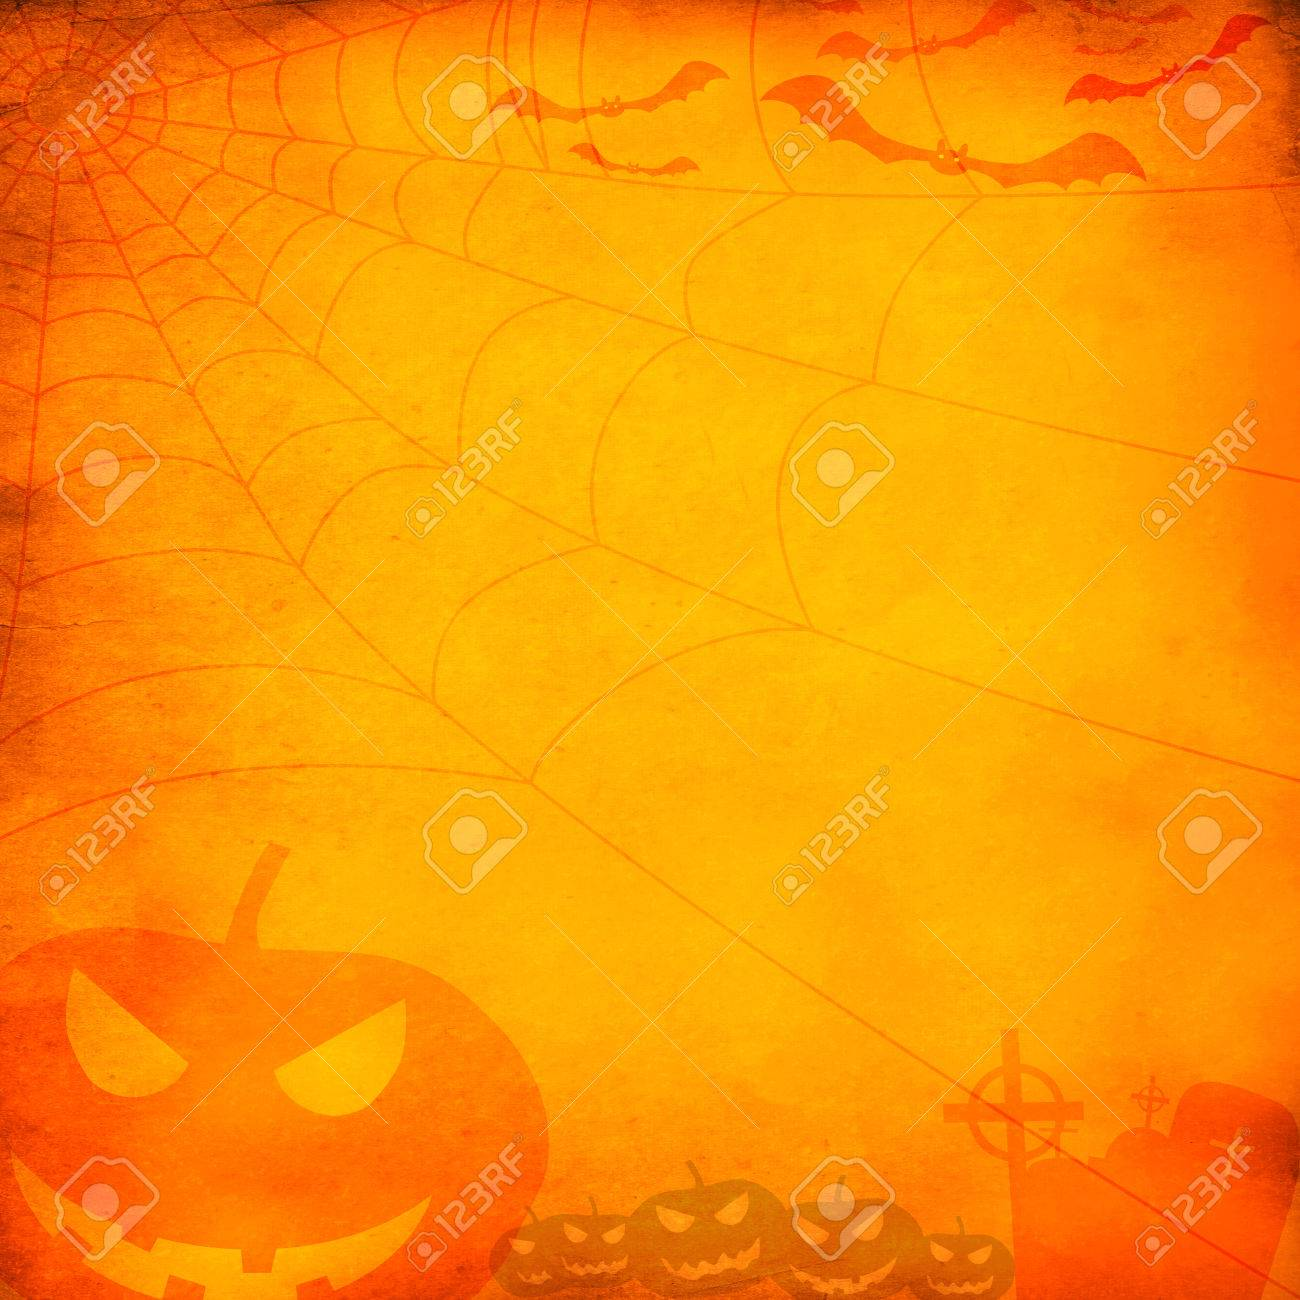 posted - Halloween Background Images Free